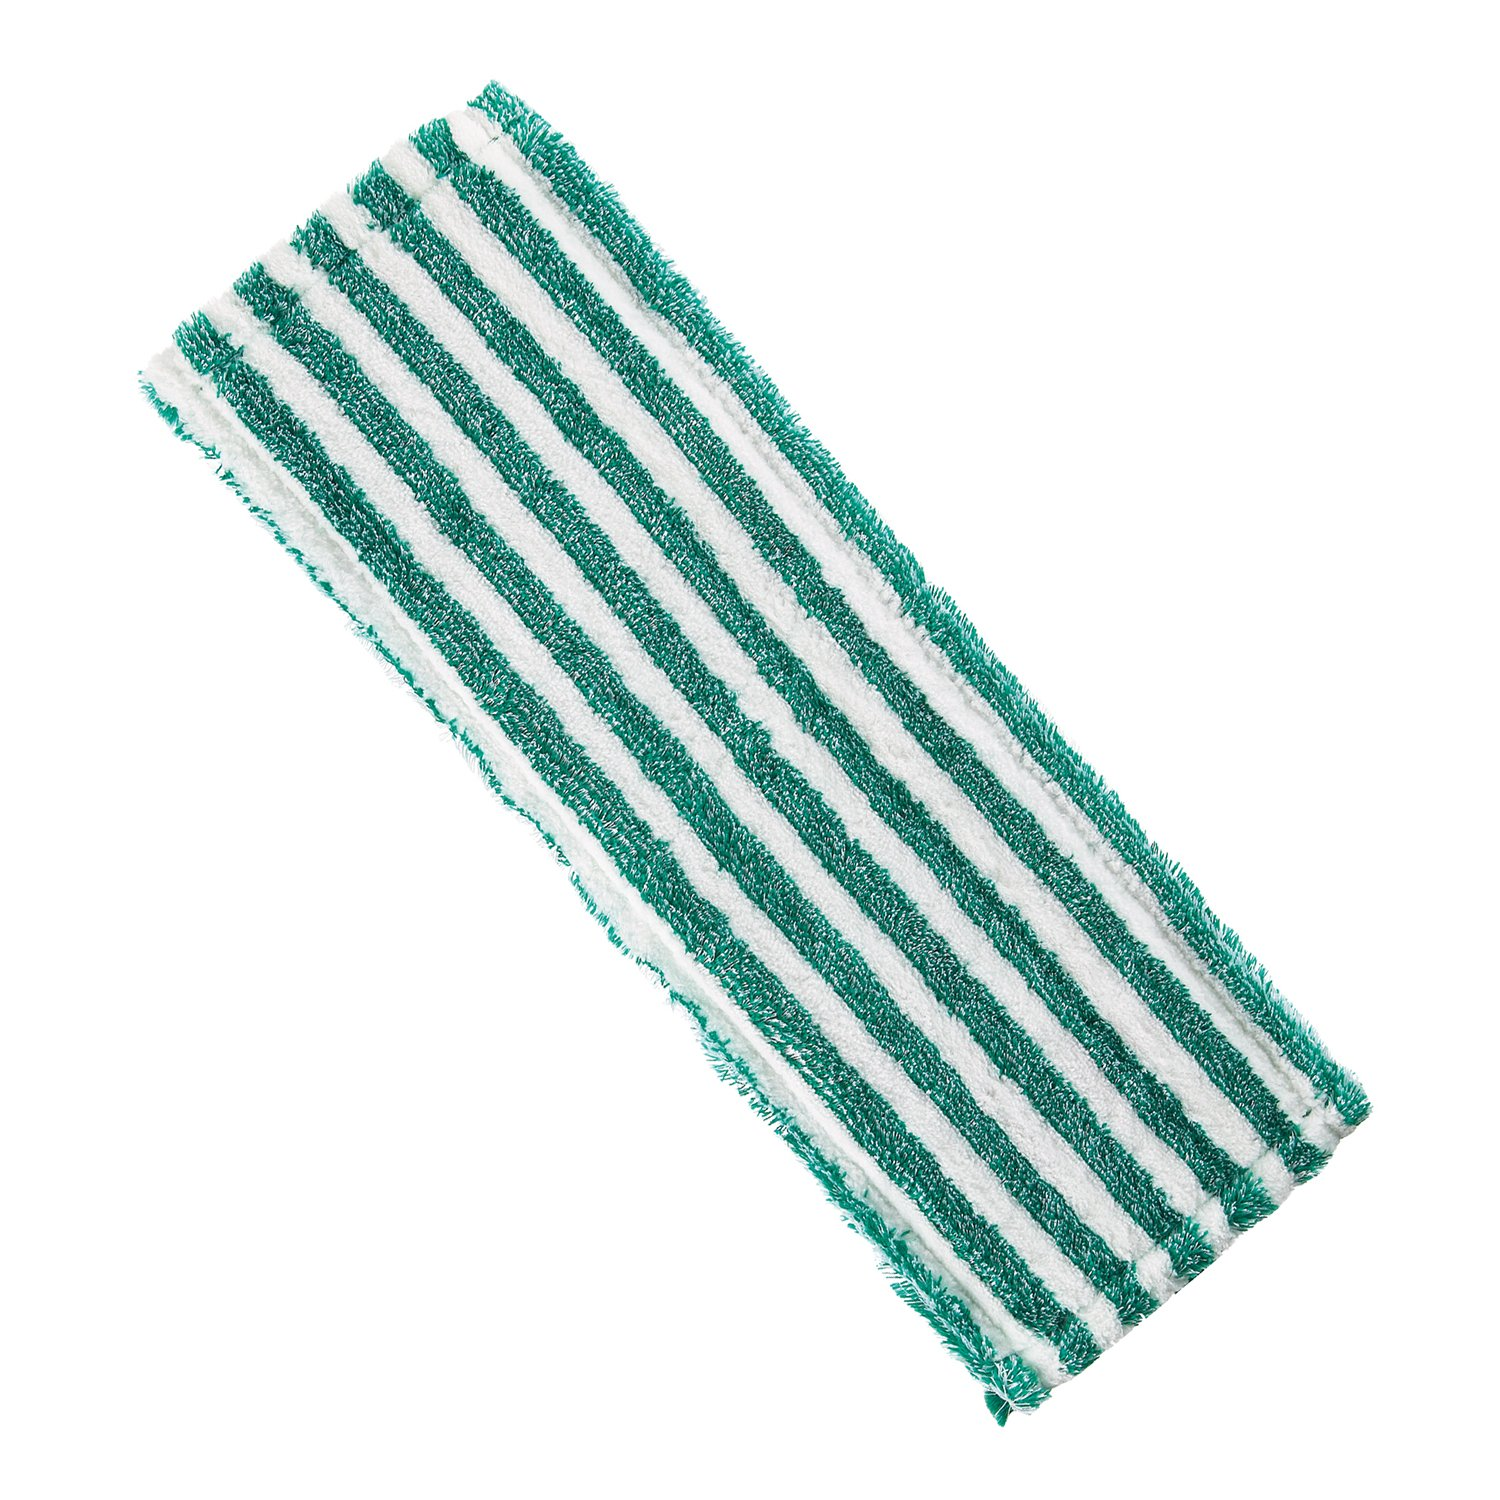 Amazon.com: Libman Microfiber Floor Mop Refill: Home & Kitchen